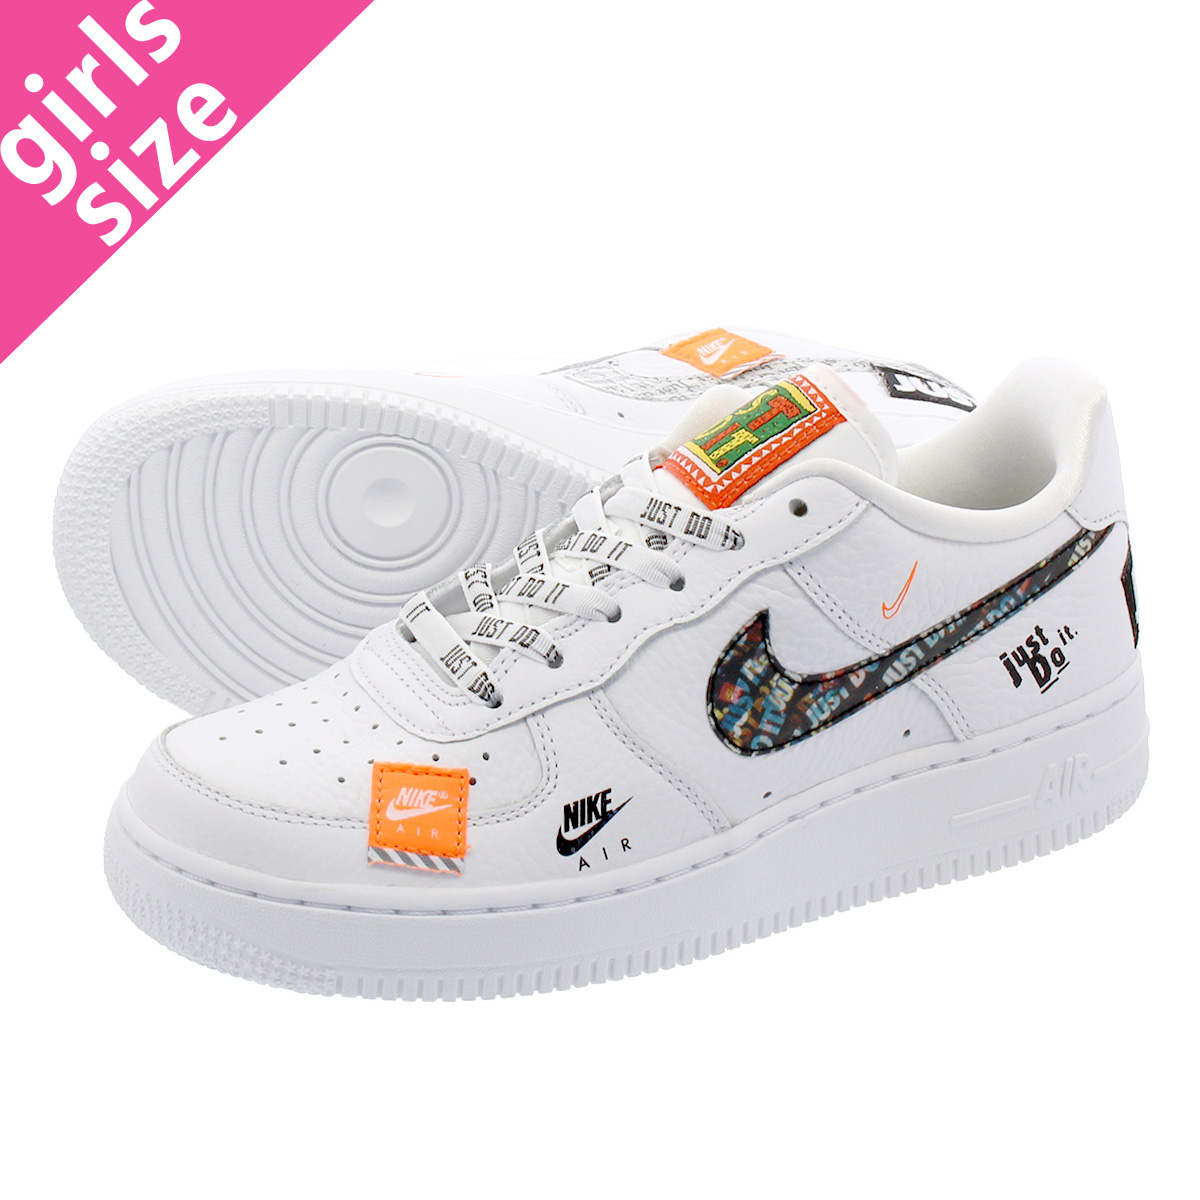 Nike AIR FORCE 1 JDI PRM (GS) 'JUST DO IT' AO3977 100